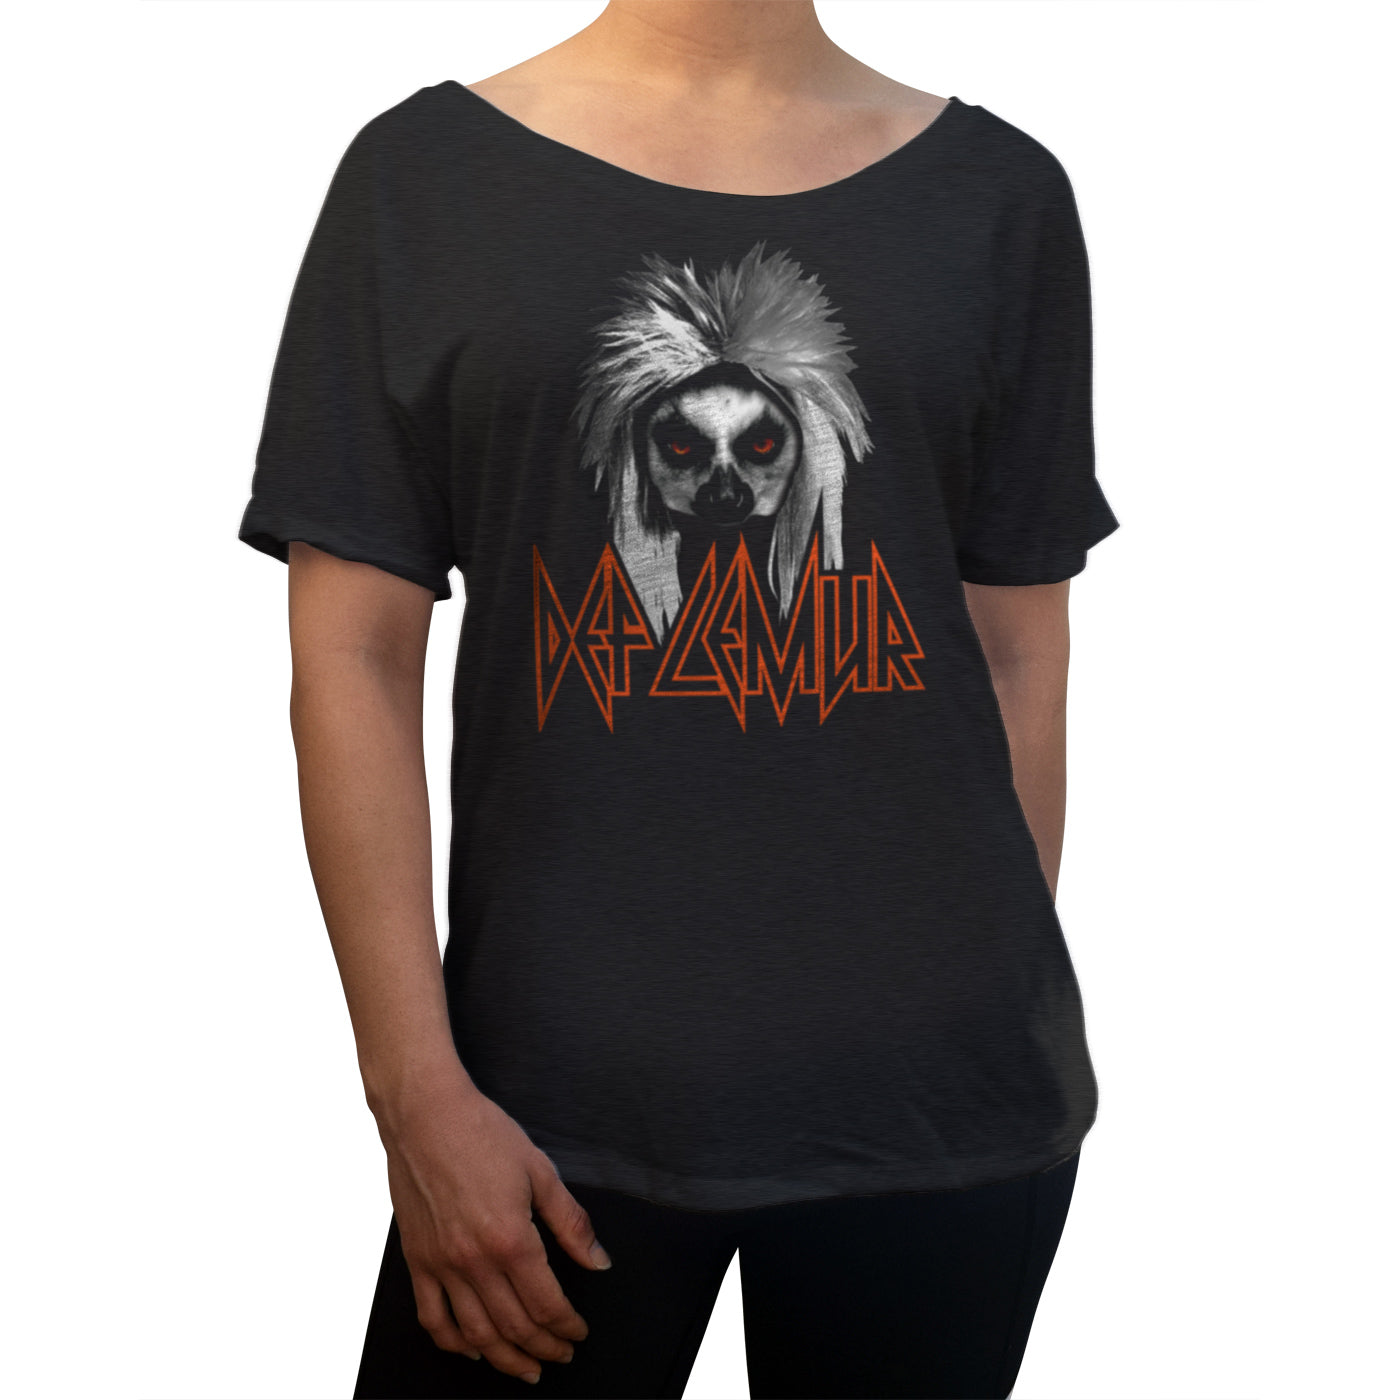 Women's Def Lemur Scoop Neck T-Shirt